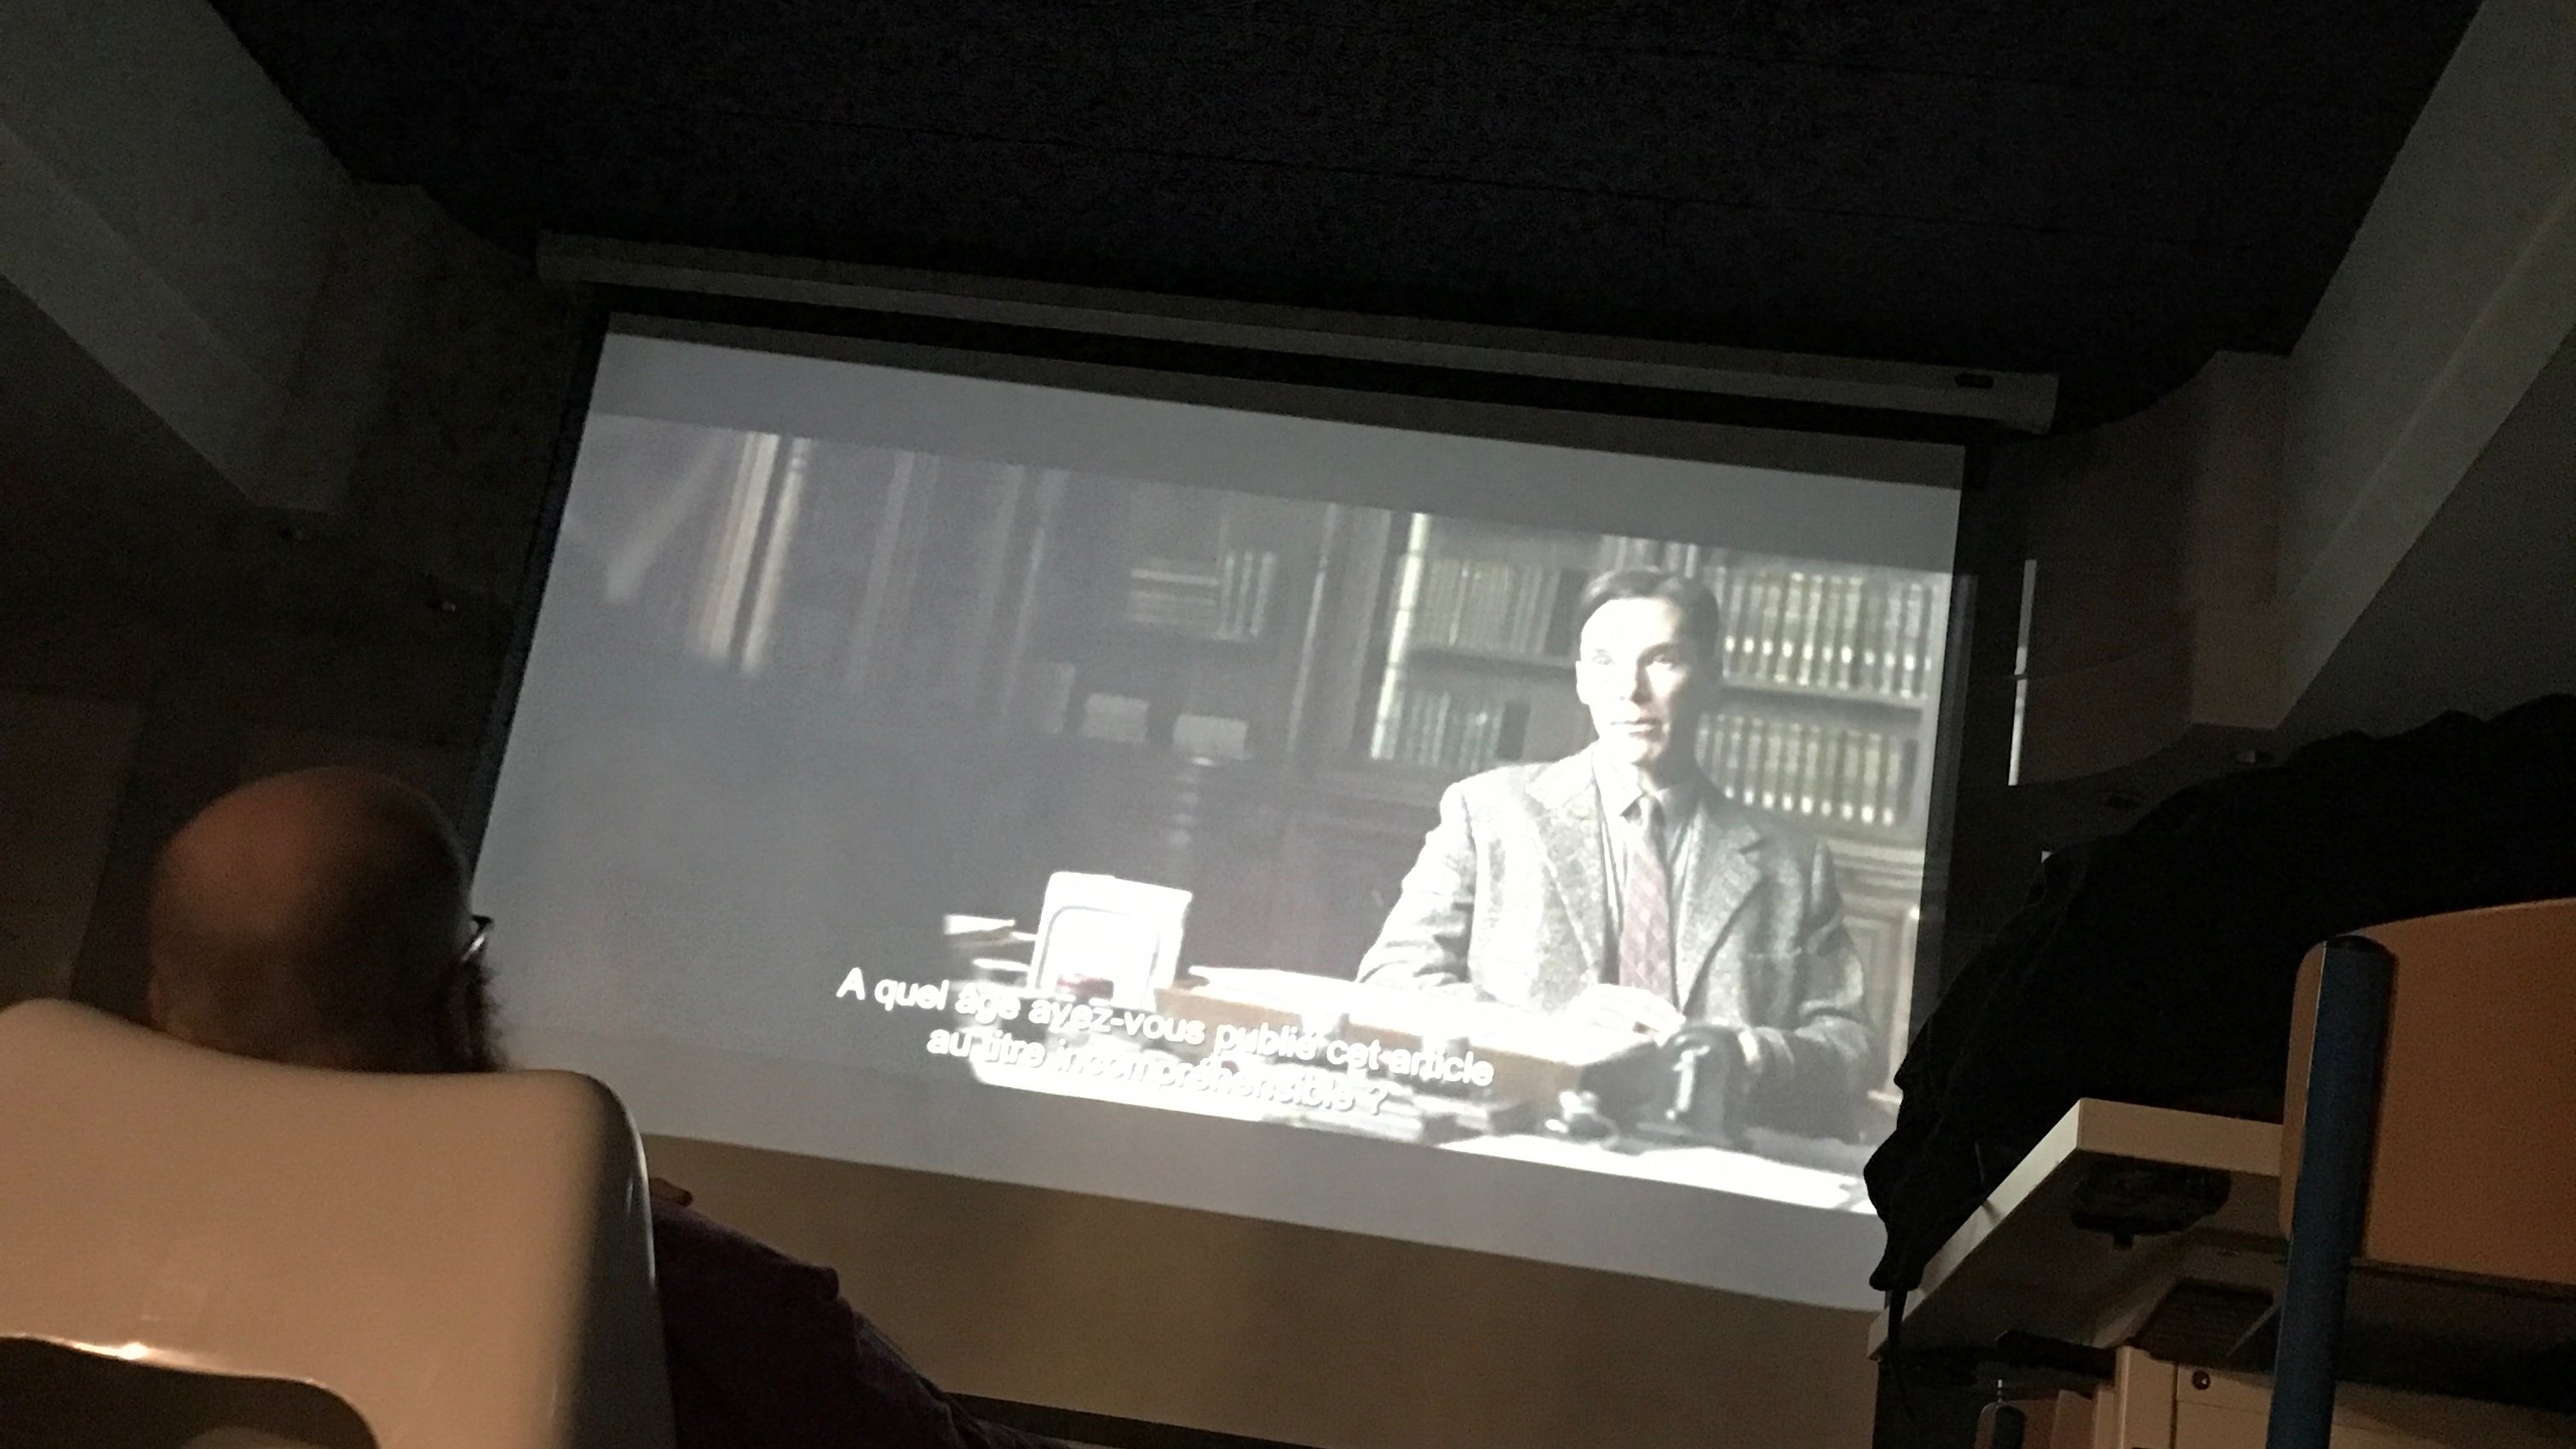 Diffusion The imitation game - E-mma Lille